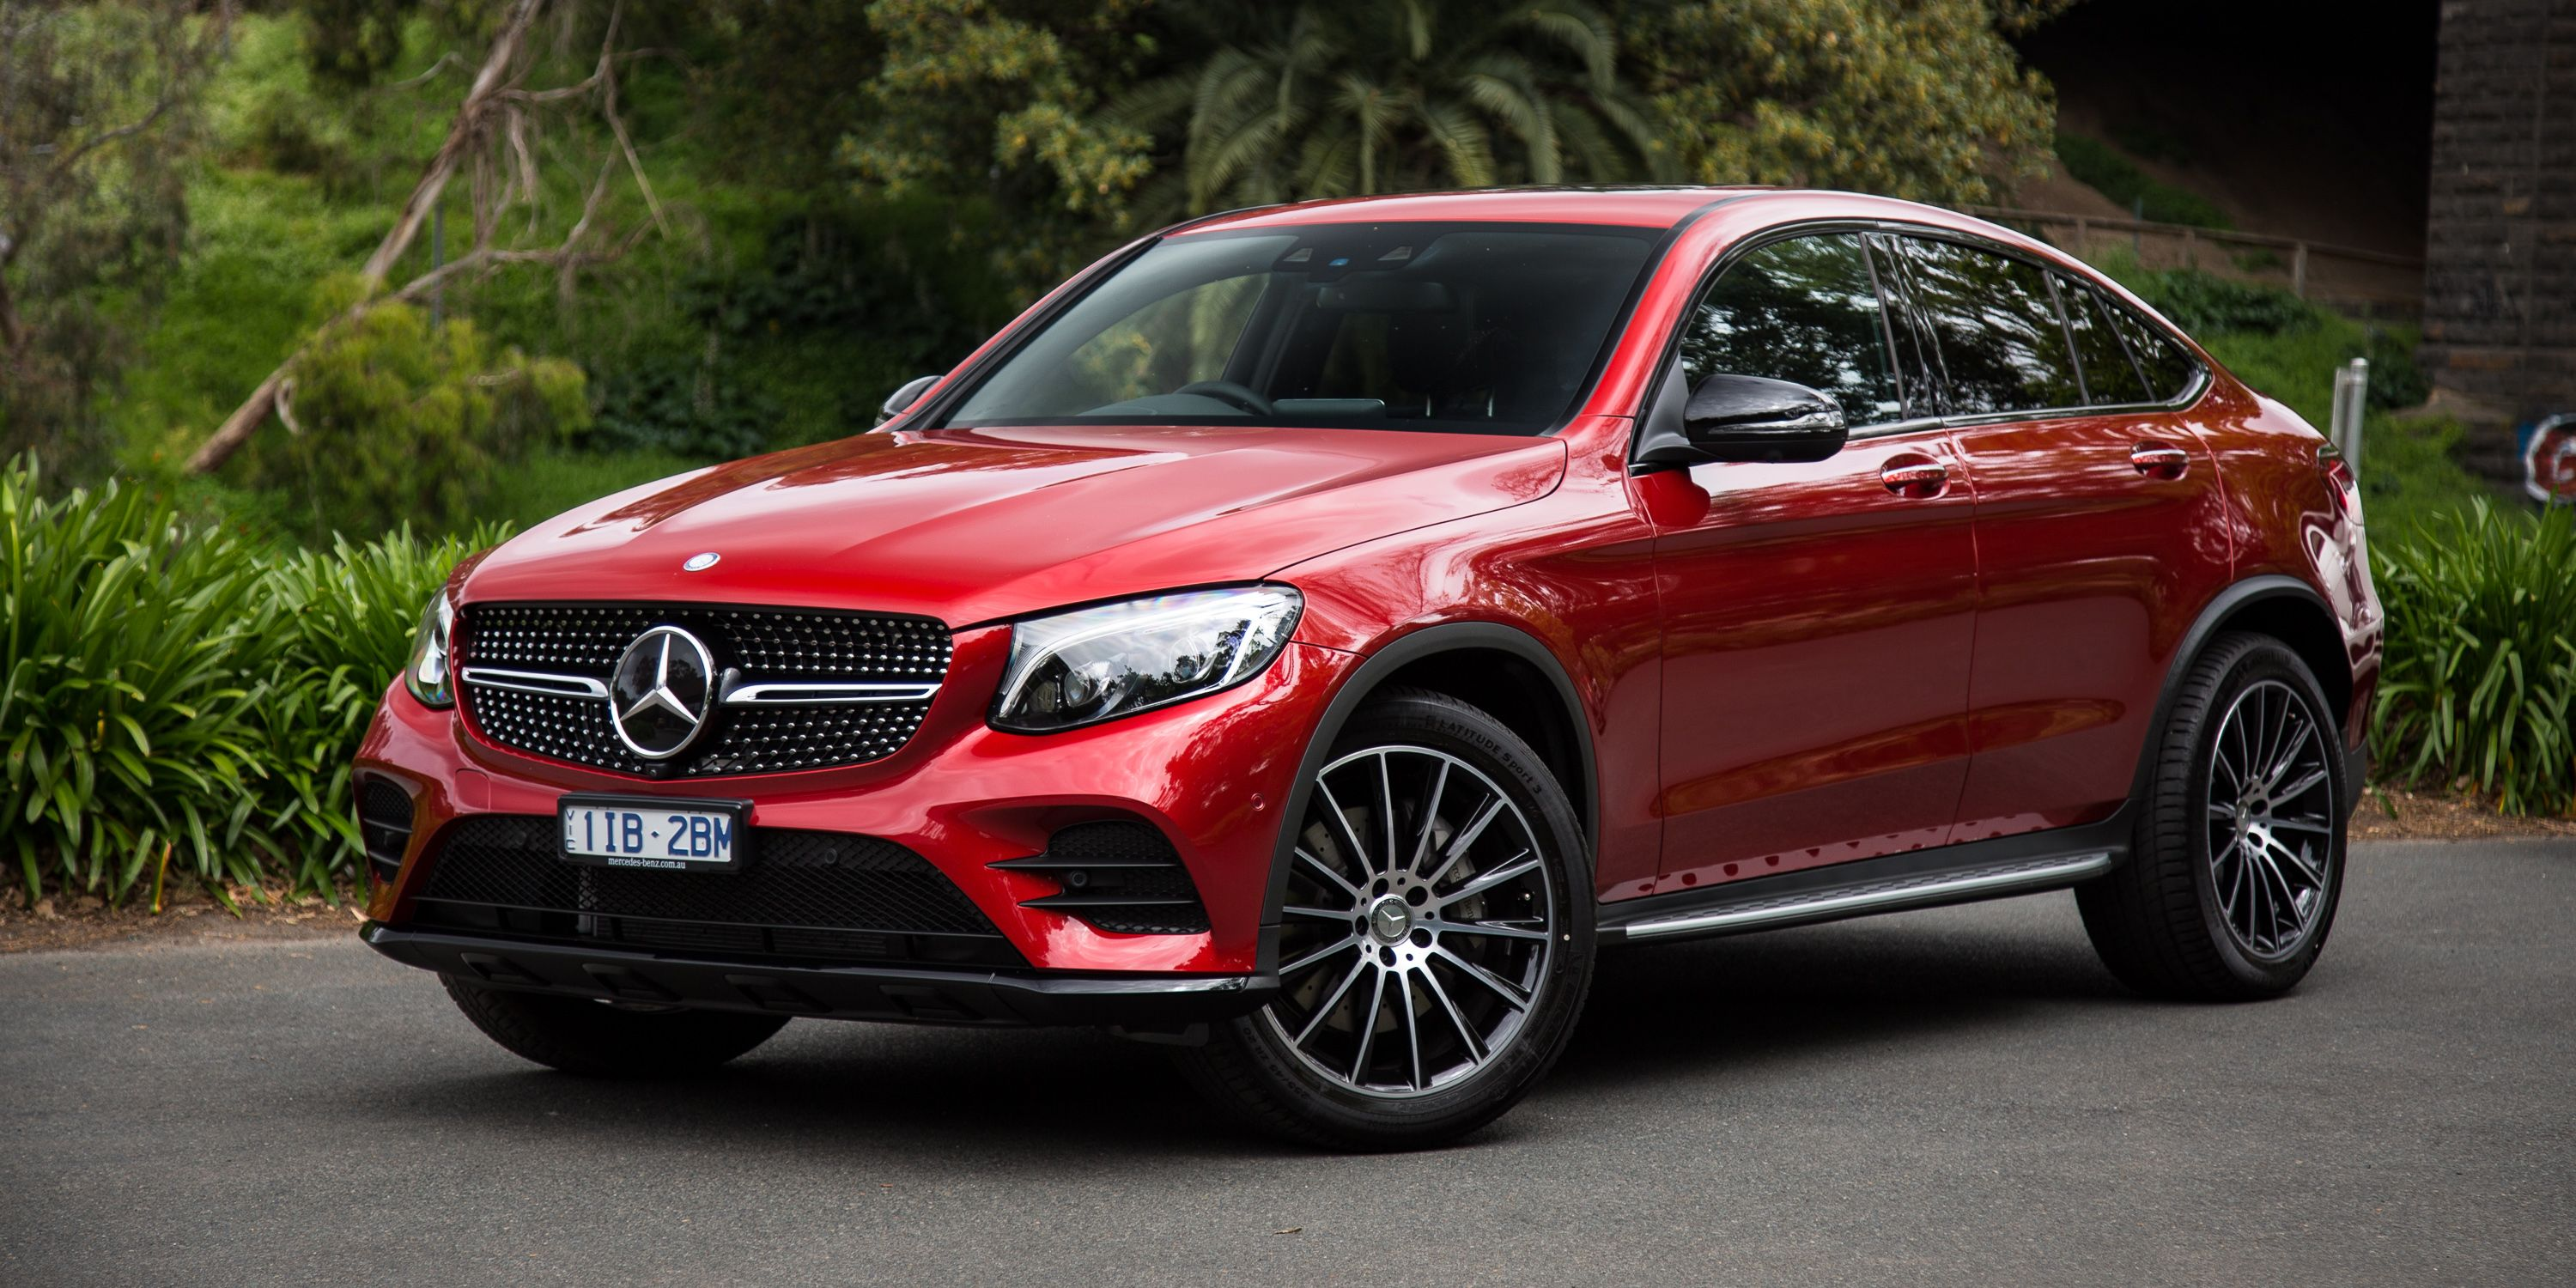 2017 Mercedes Benz Glc Coupe Review Mercedes Benz Glc Coupe